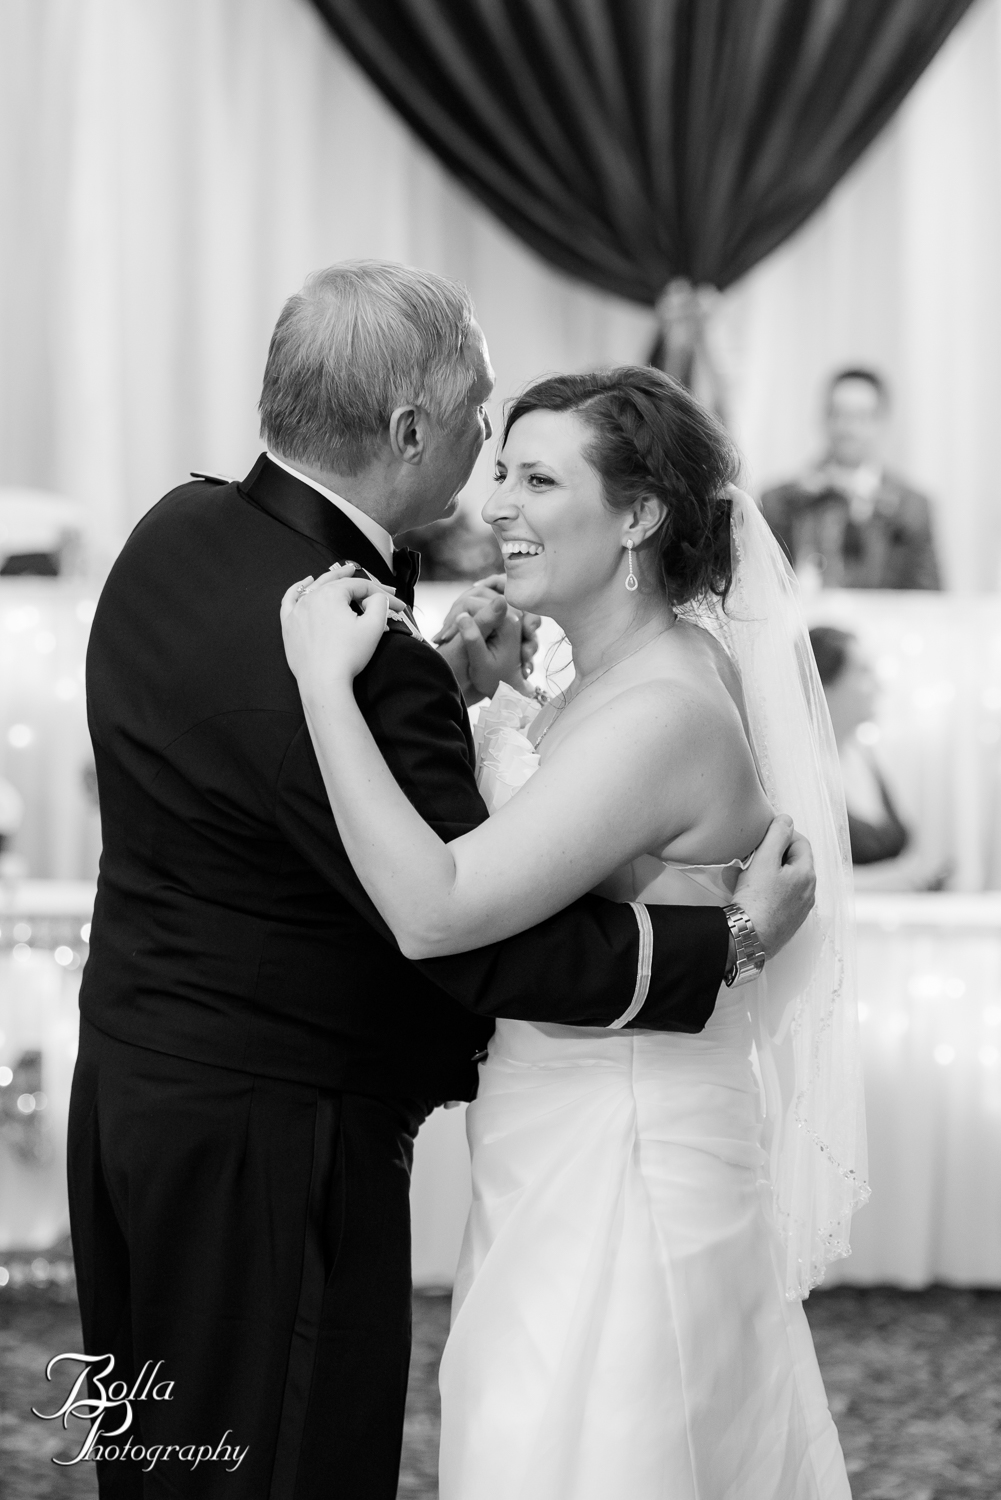 Bolla_Photography_St_Louis_wedding_photographer-0465.jpg